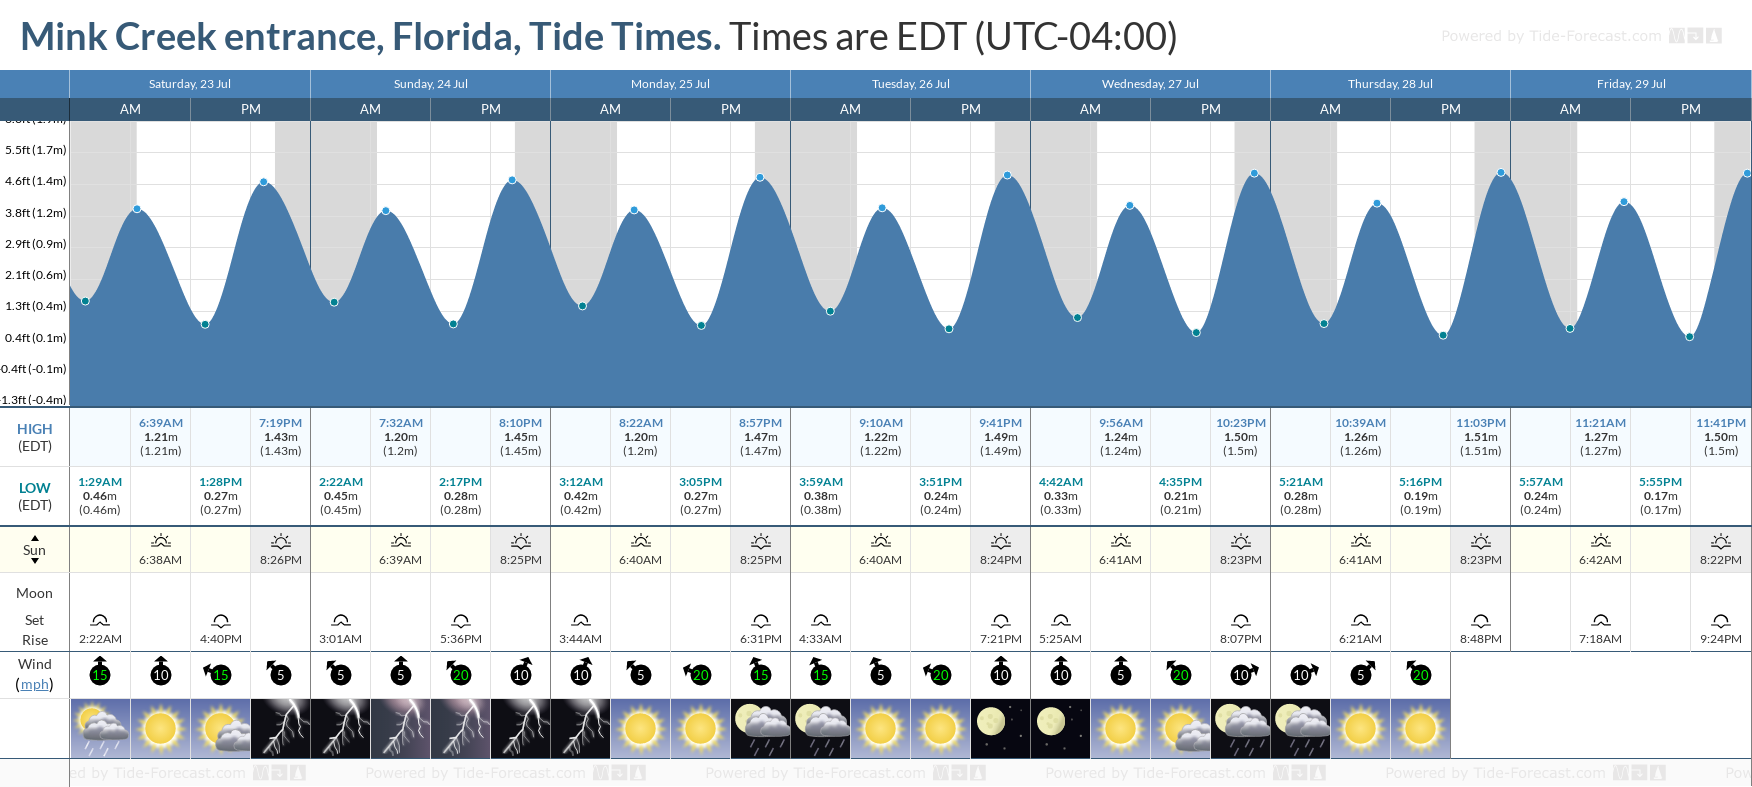 Mink Creek entrance, Florida Tide Chart including high and low tide tide times for the next 7 days